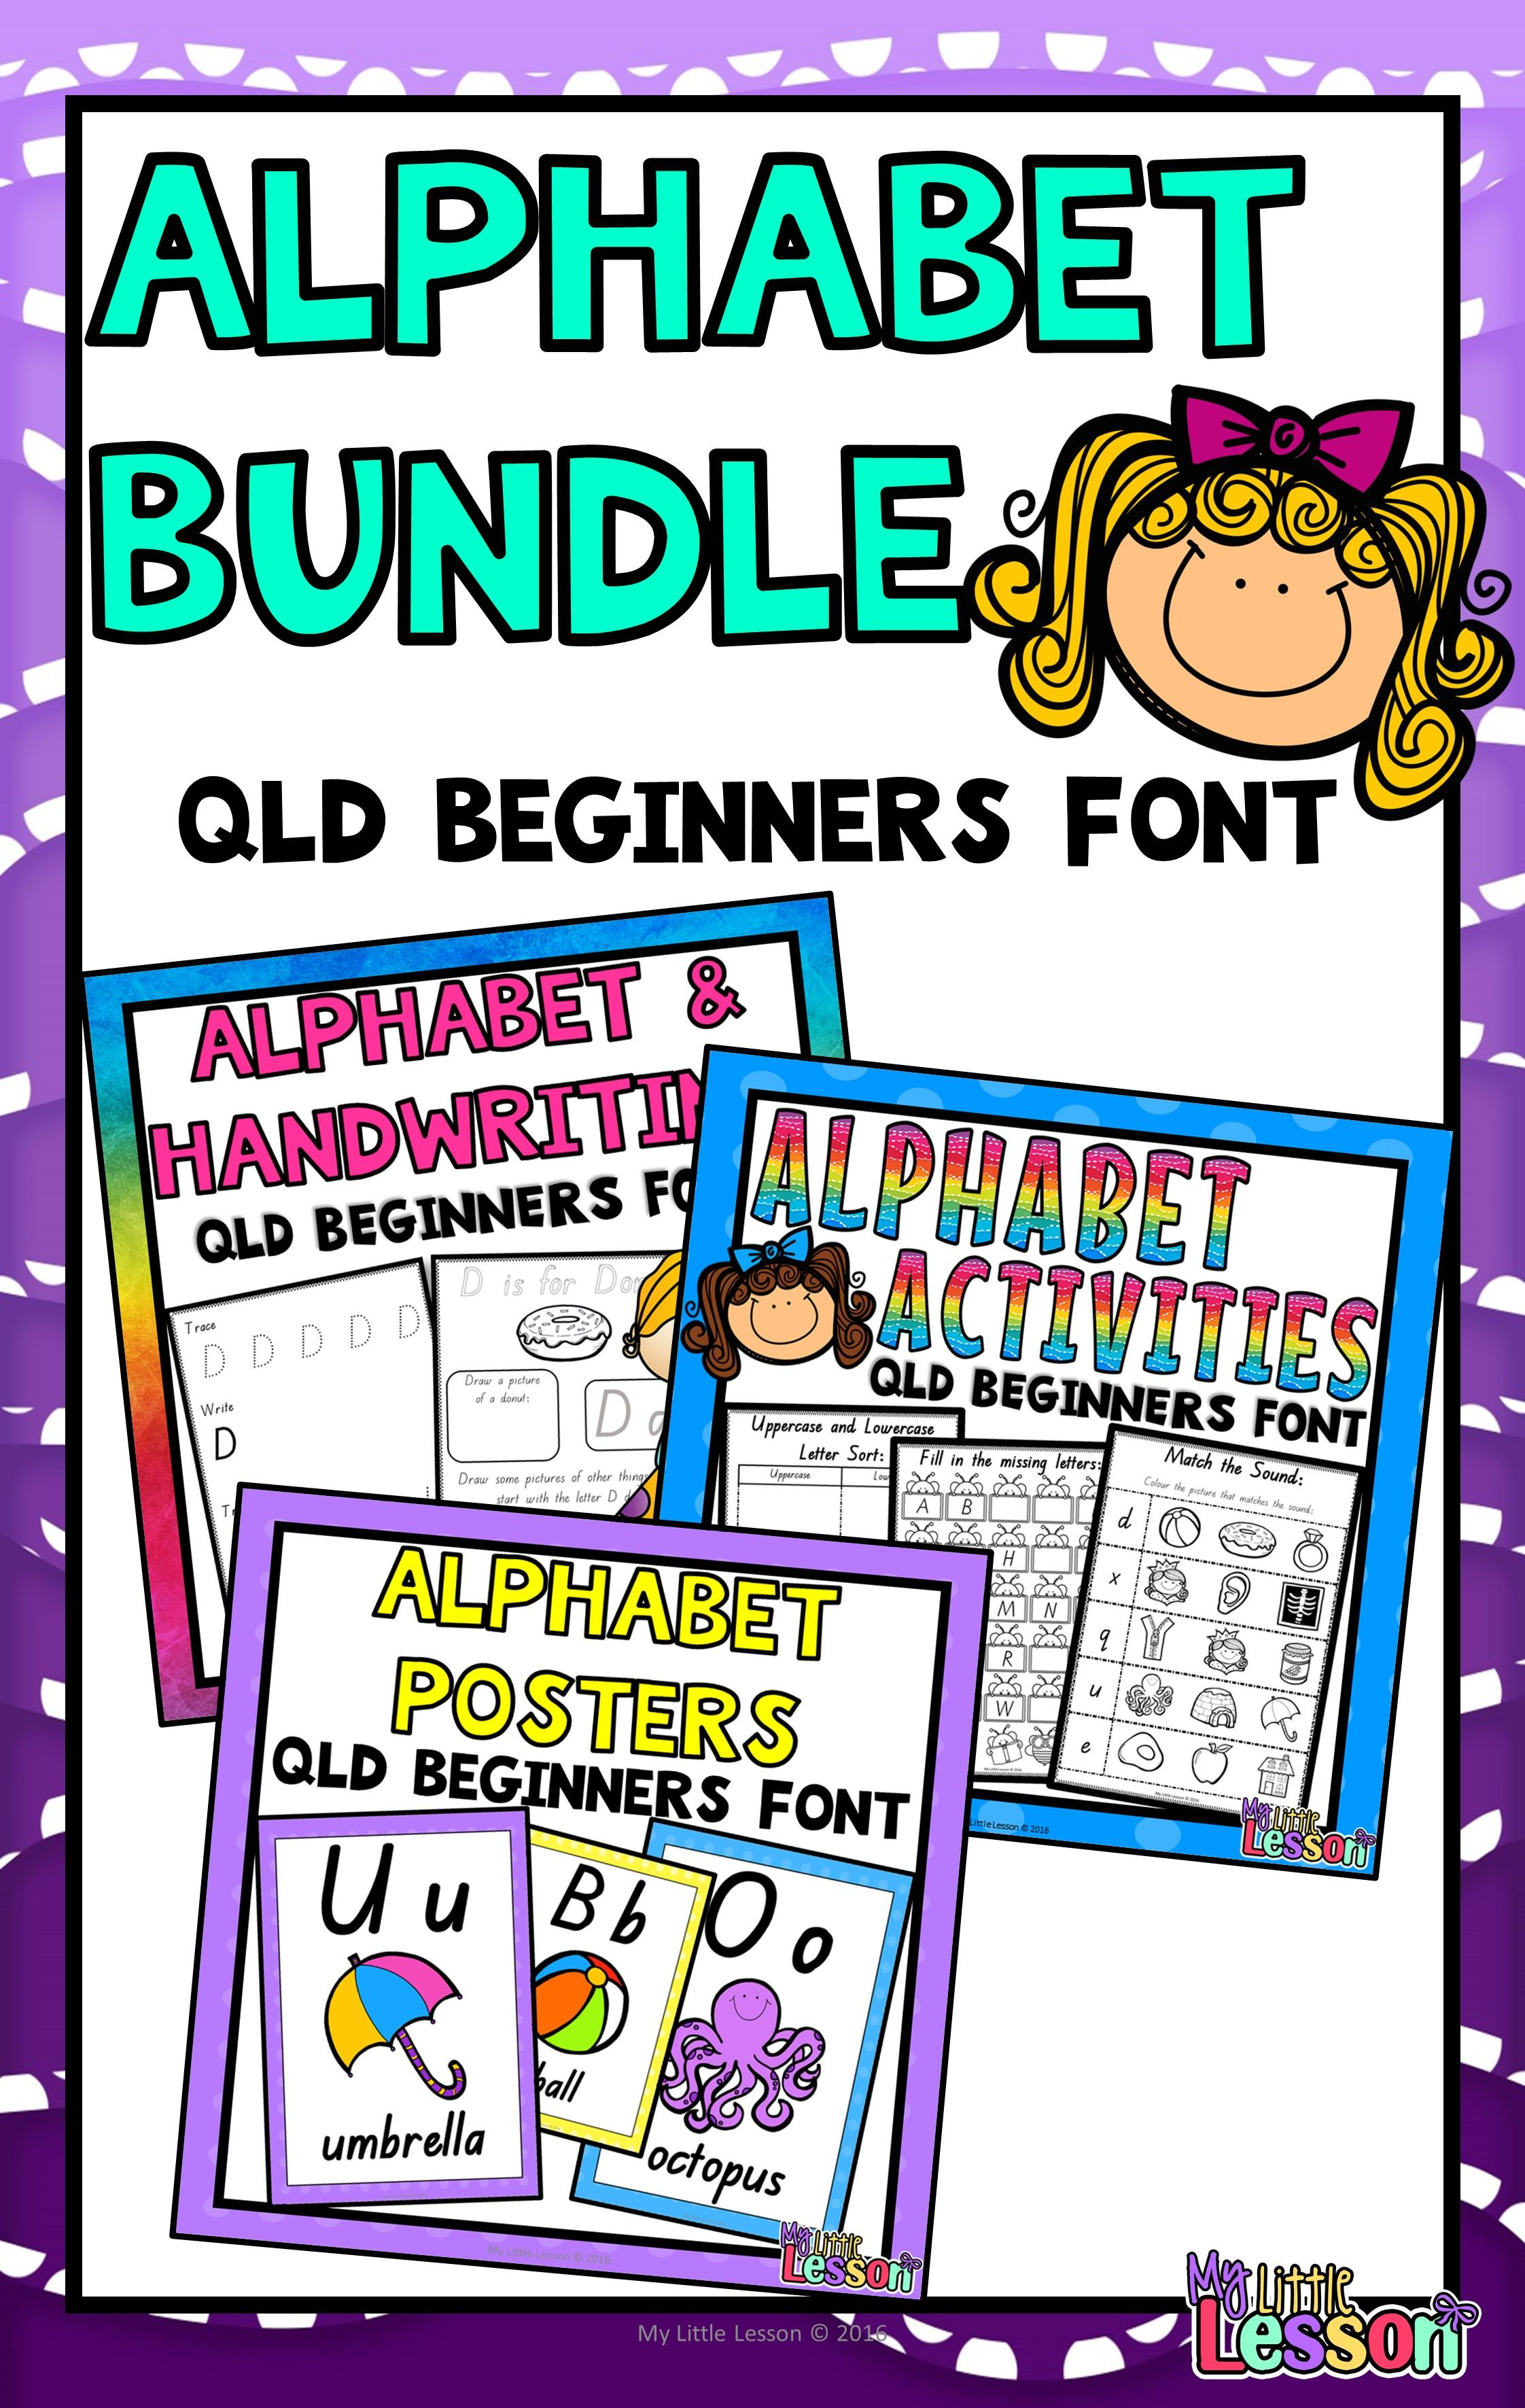 Alphabet Bundle Qld Beginners Font Worksheets Posters